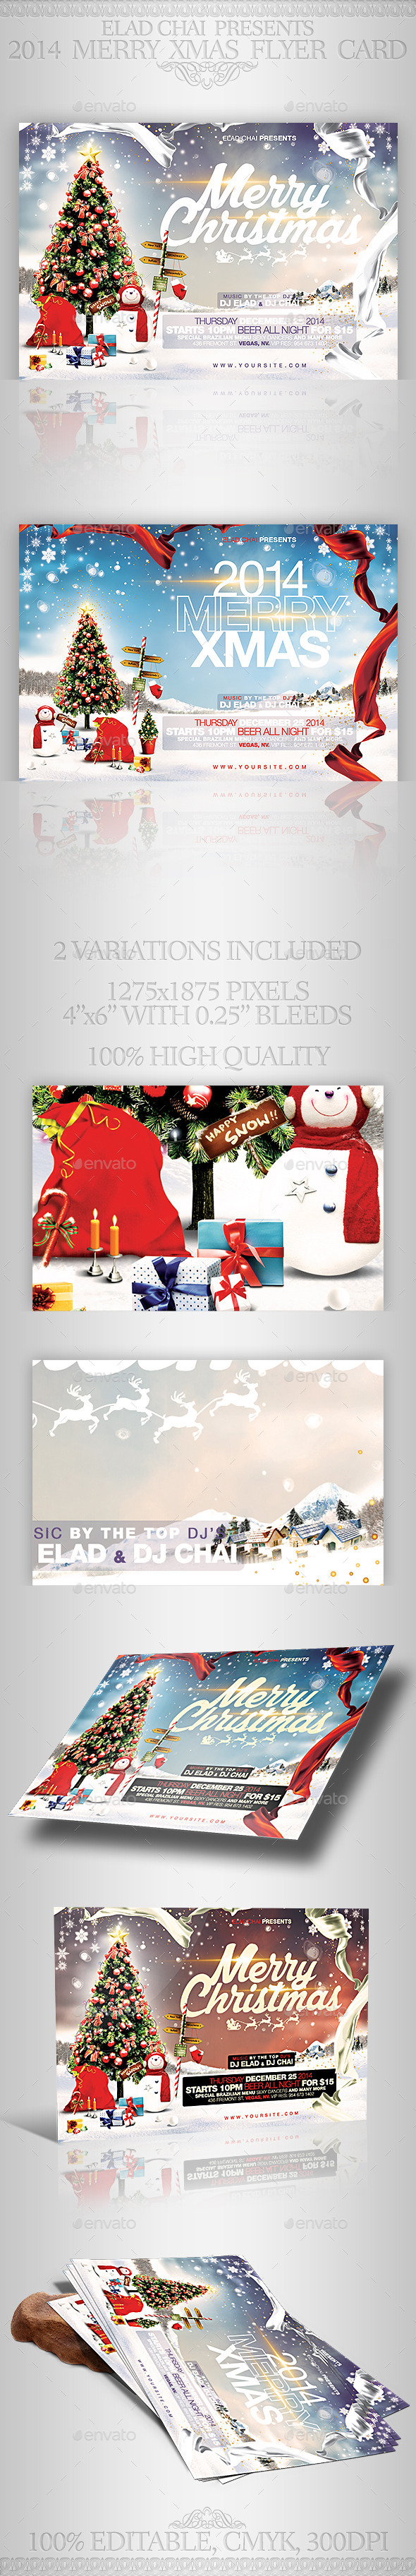 2015 Christmas Flyer Card Template - Holidays Events